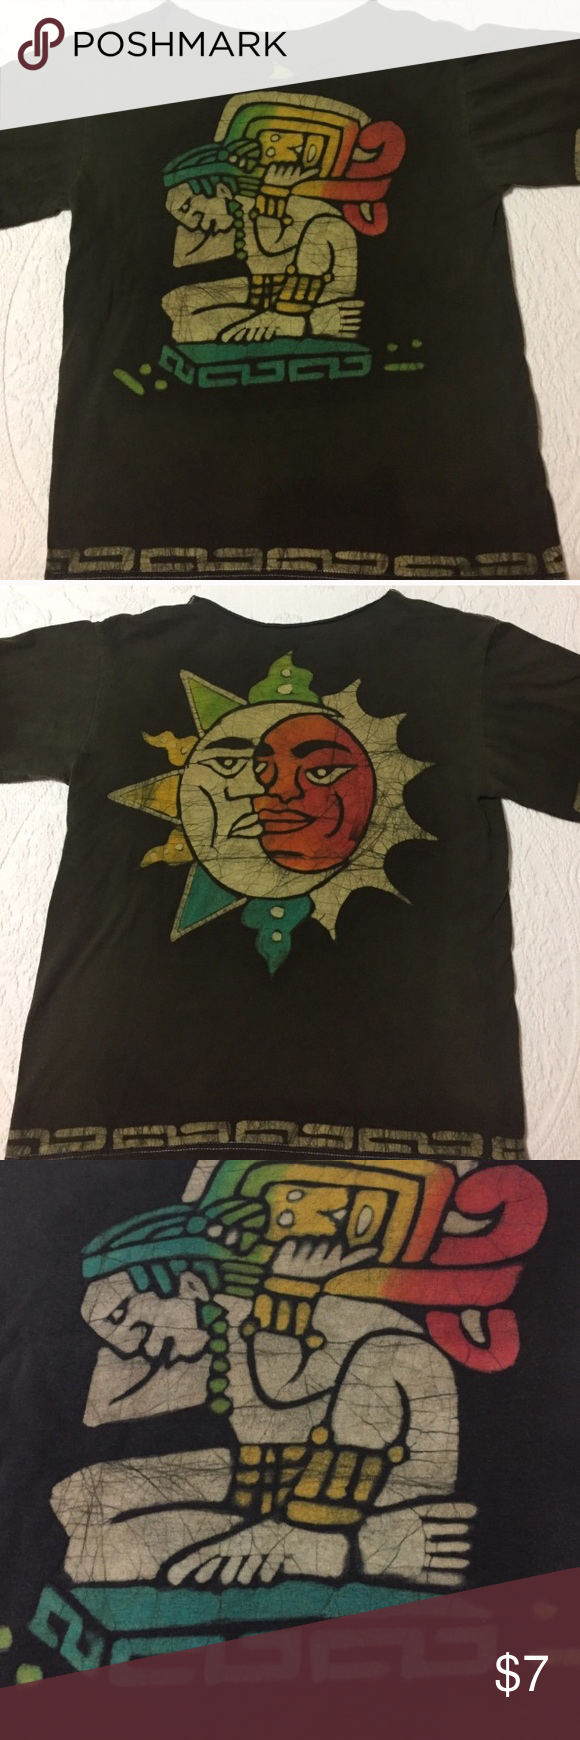 """Destructed Mayan Sun Tshirt Collar has been cut out. No tag size. Looks like a women's small. Measurements: Chest 18"""" length 22.5"""" neck opening 11"""". Sun/moon is on back. Tops Tees - Short Sleeve"""